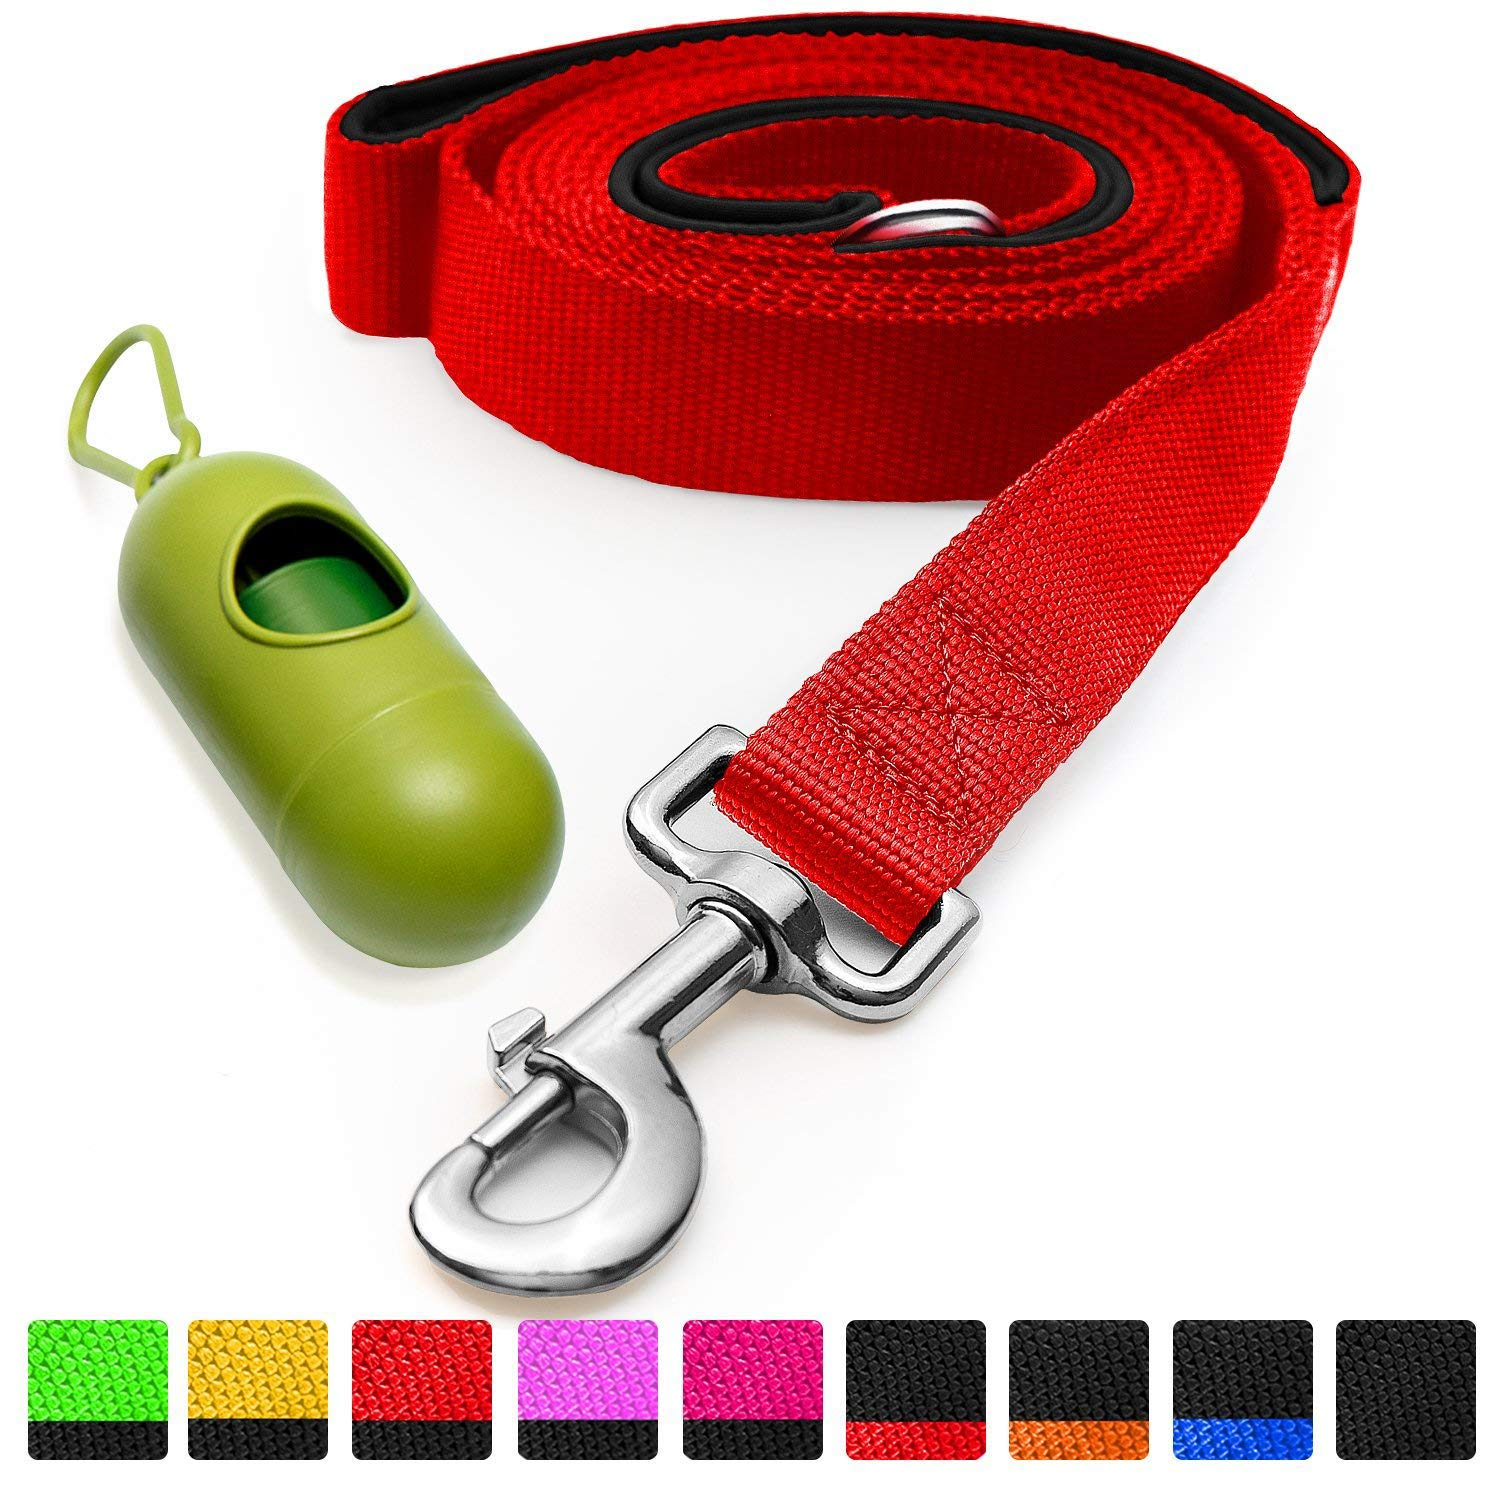 Red Black [Strong] Dog Leash with Bonus Free Waste Bag Dispenser Thick Padded Dual Handles, Includes Poop Bags & 100% Nylon (6ft. Long) Comfortable Grip Ideal for Large, Medium and Small Dogs